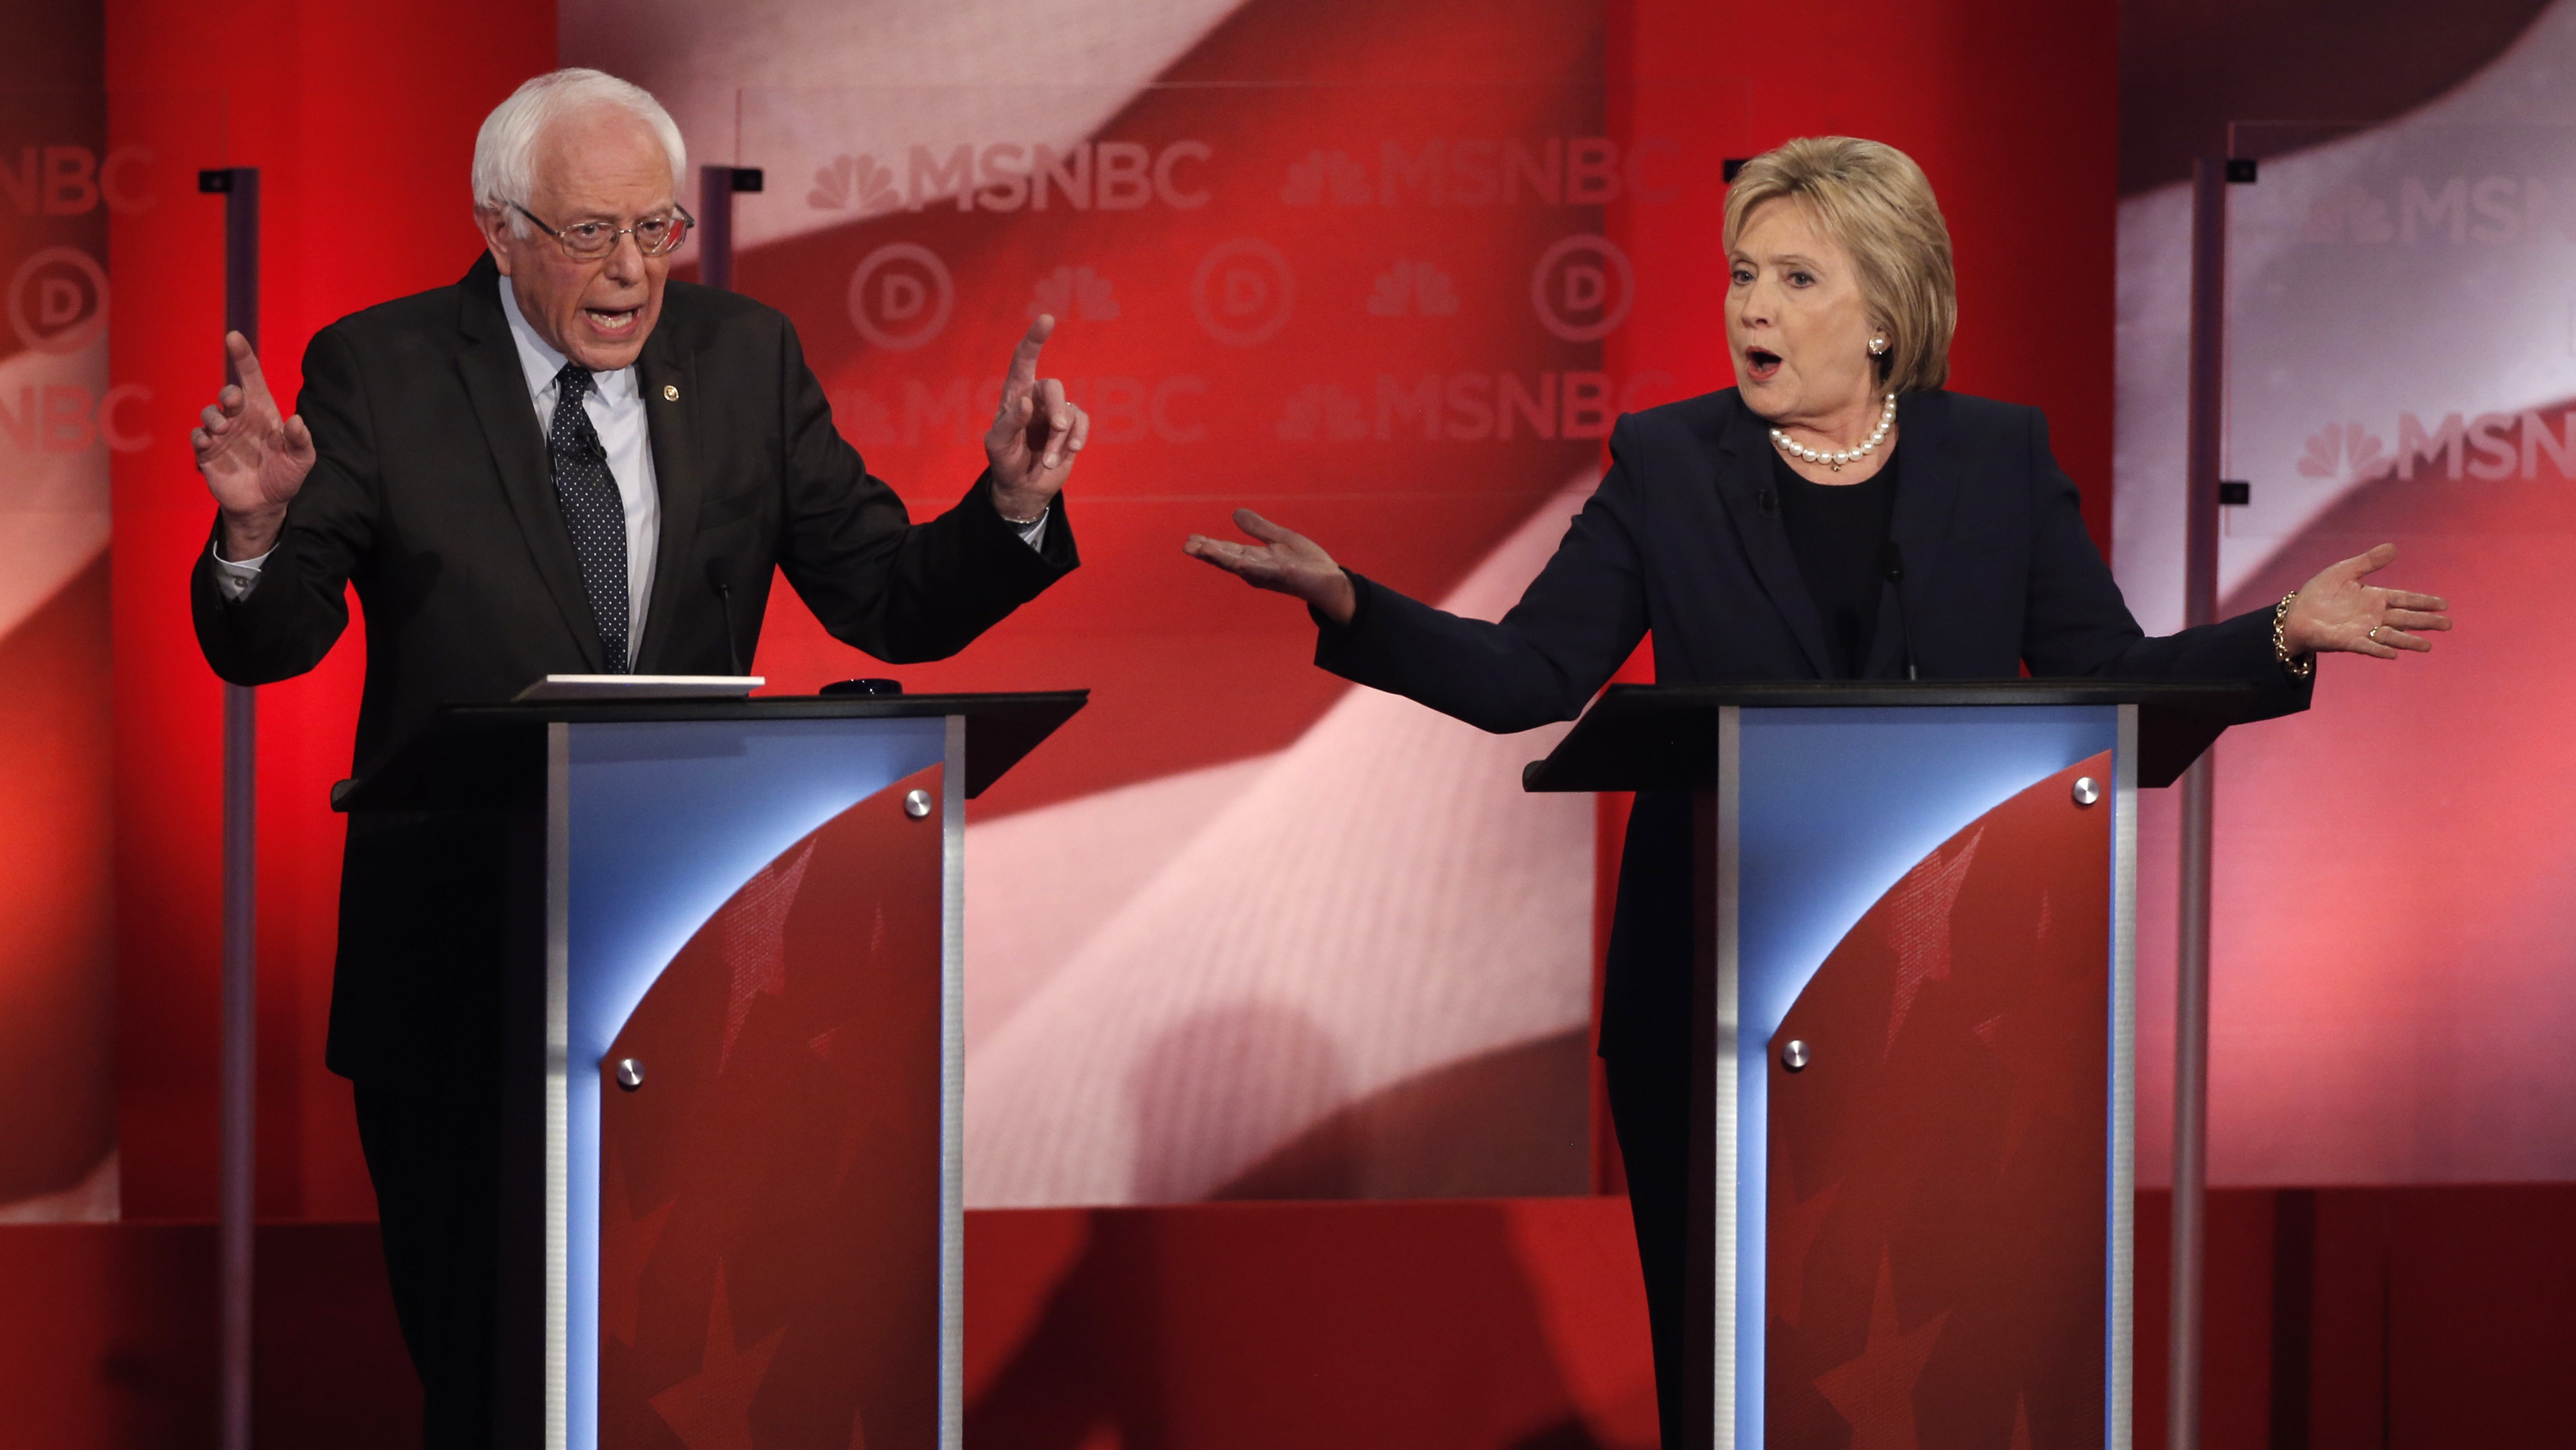 Democratic U.S. presidential candidate Senator Sanders and former Secretary of State Clinton speak as they discuss issues during the Democratic presidential candidates debate sponsored by MSNBC at the University of New Hampshire in Durham